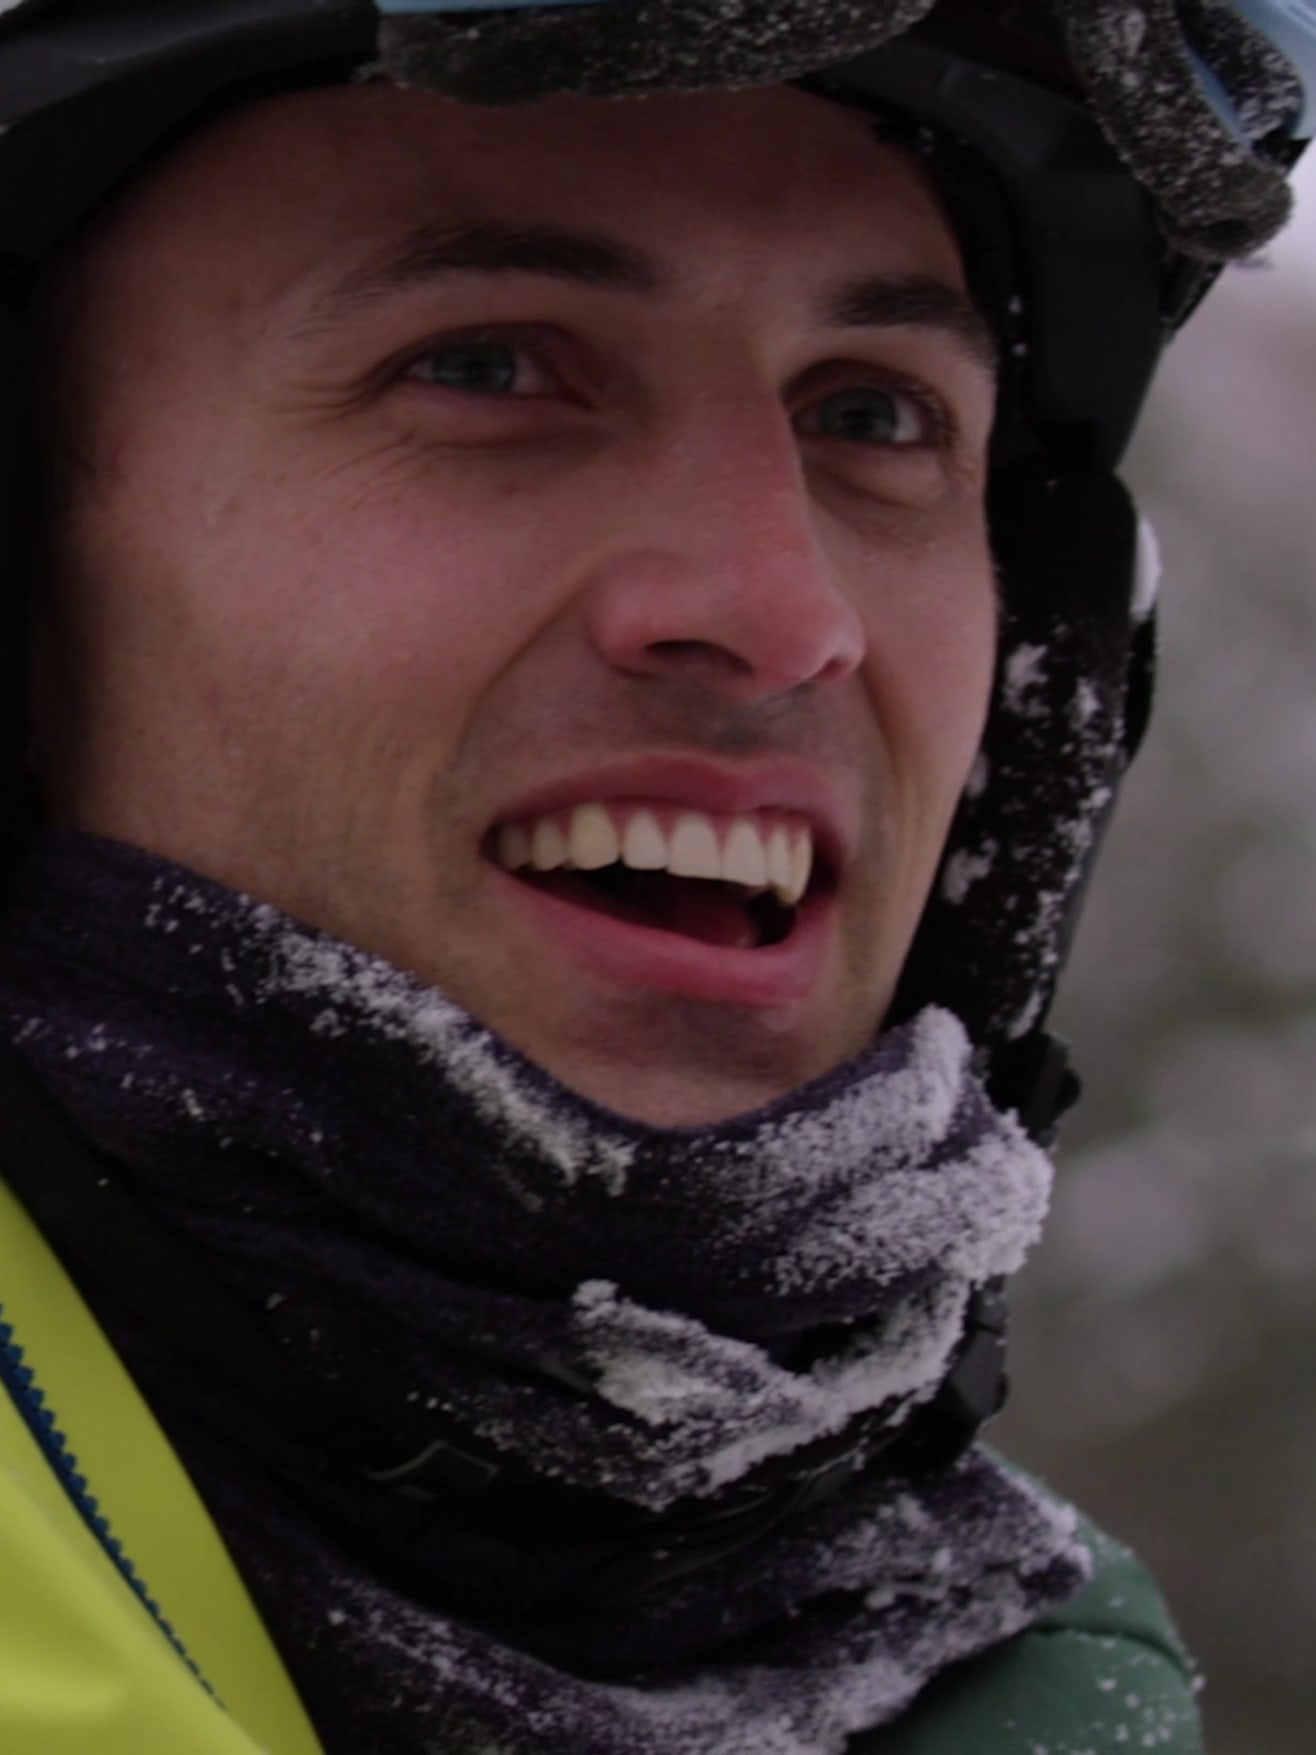 Kent smiling covered in snow